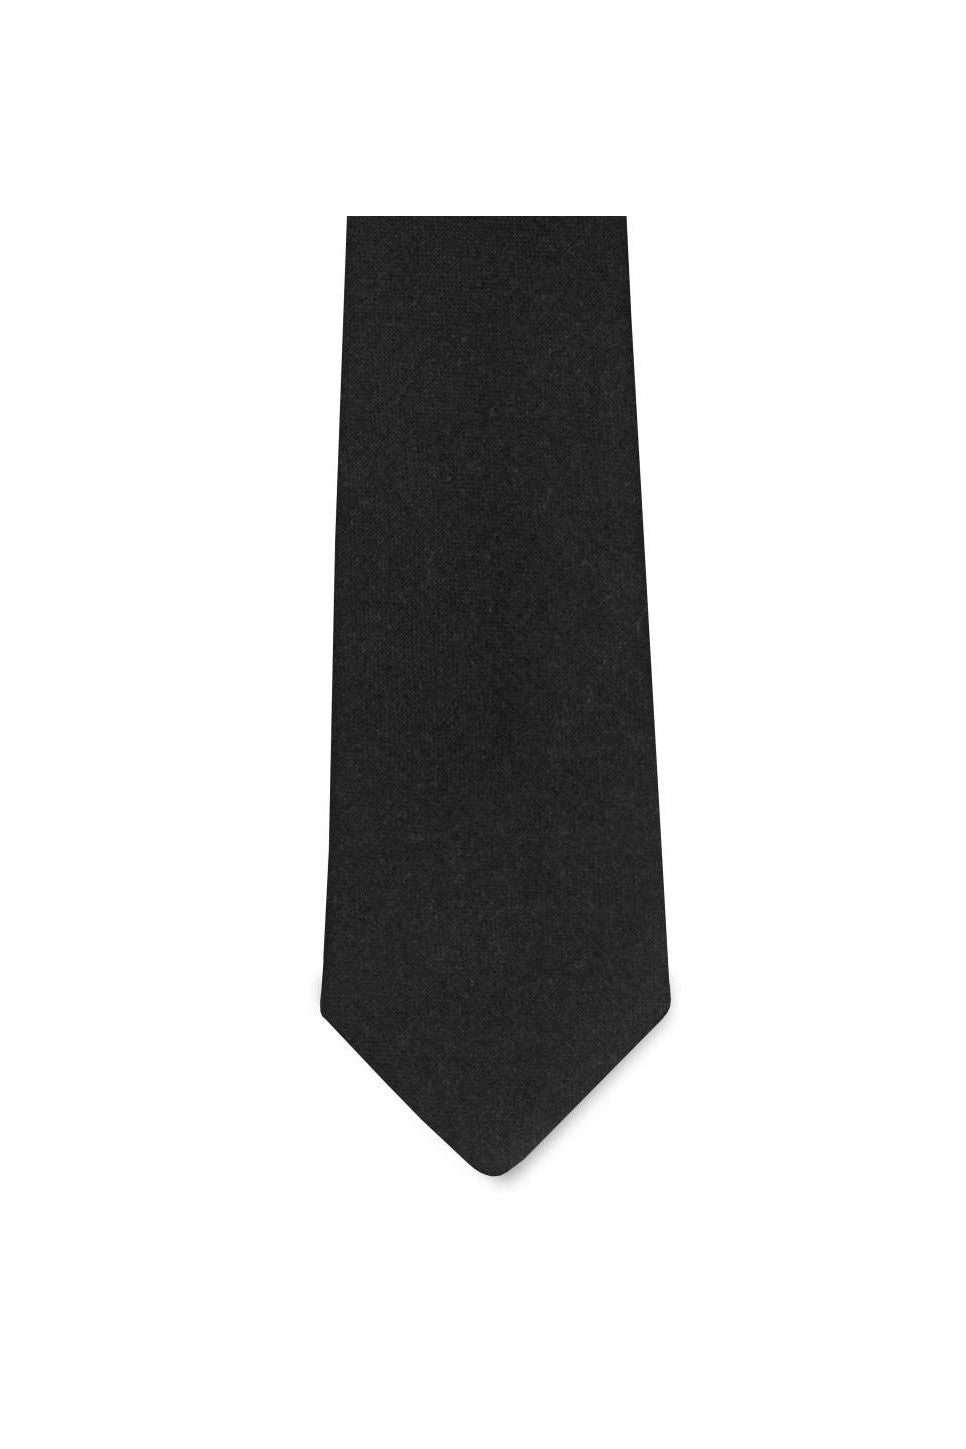 Pocket Square Clothing - Diplomat Tie - Black